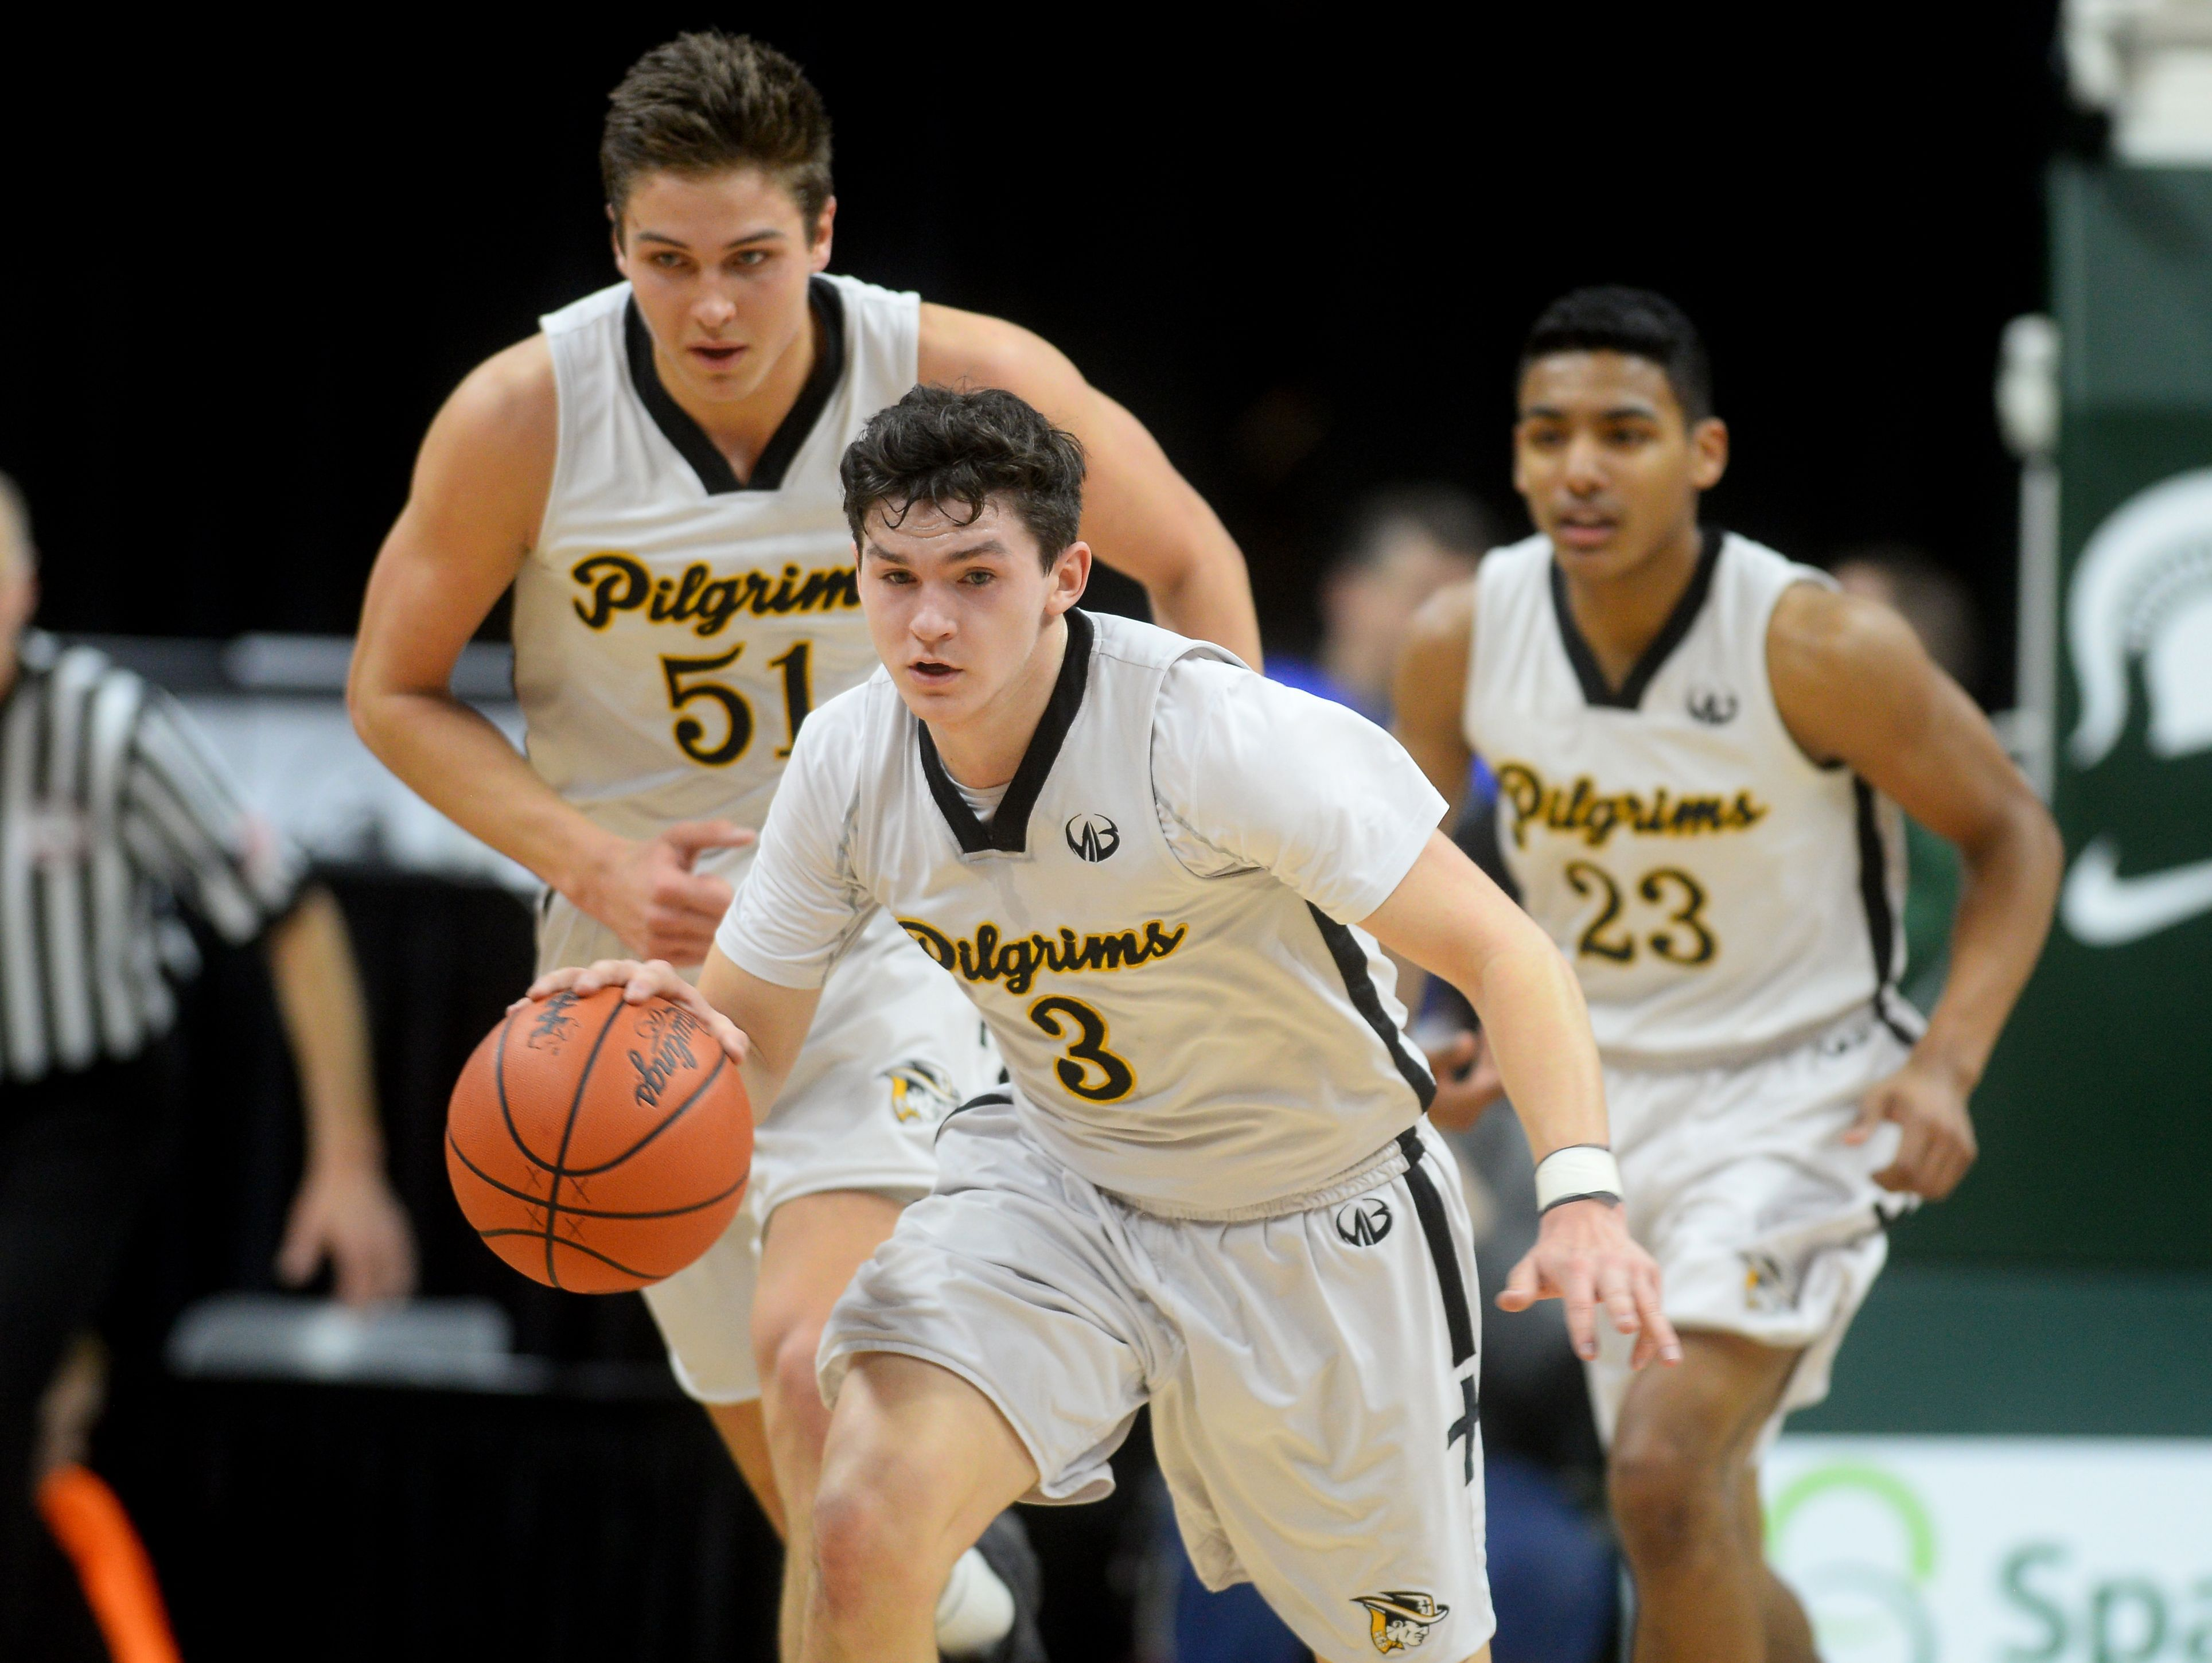 Lansing Christian's Matt Havey runs the ball down the court during the Class D state semifinals against Buckley on Thursday, March 23, 2017 at the Breslin Center in East Lansing. Buckley won, 68-61.